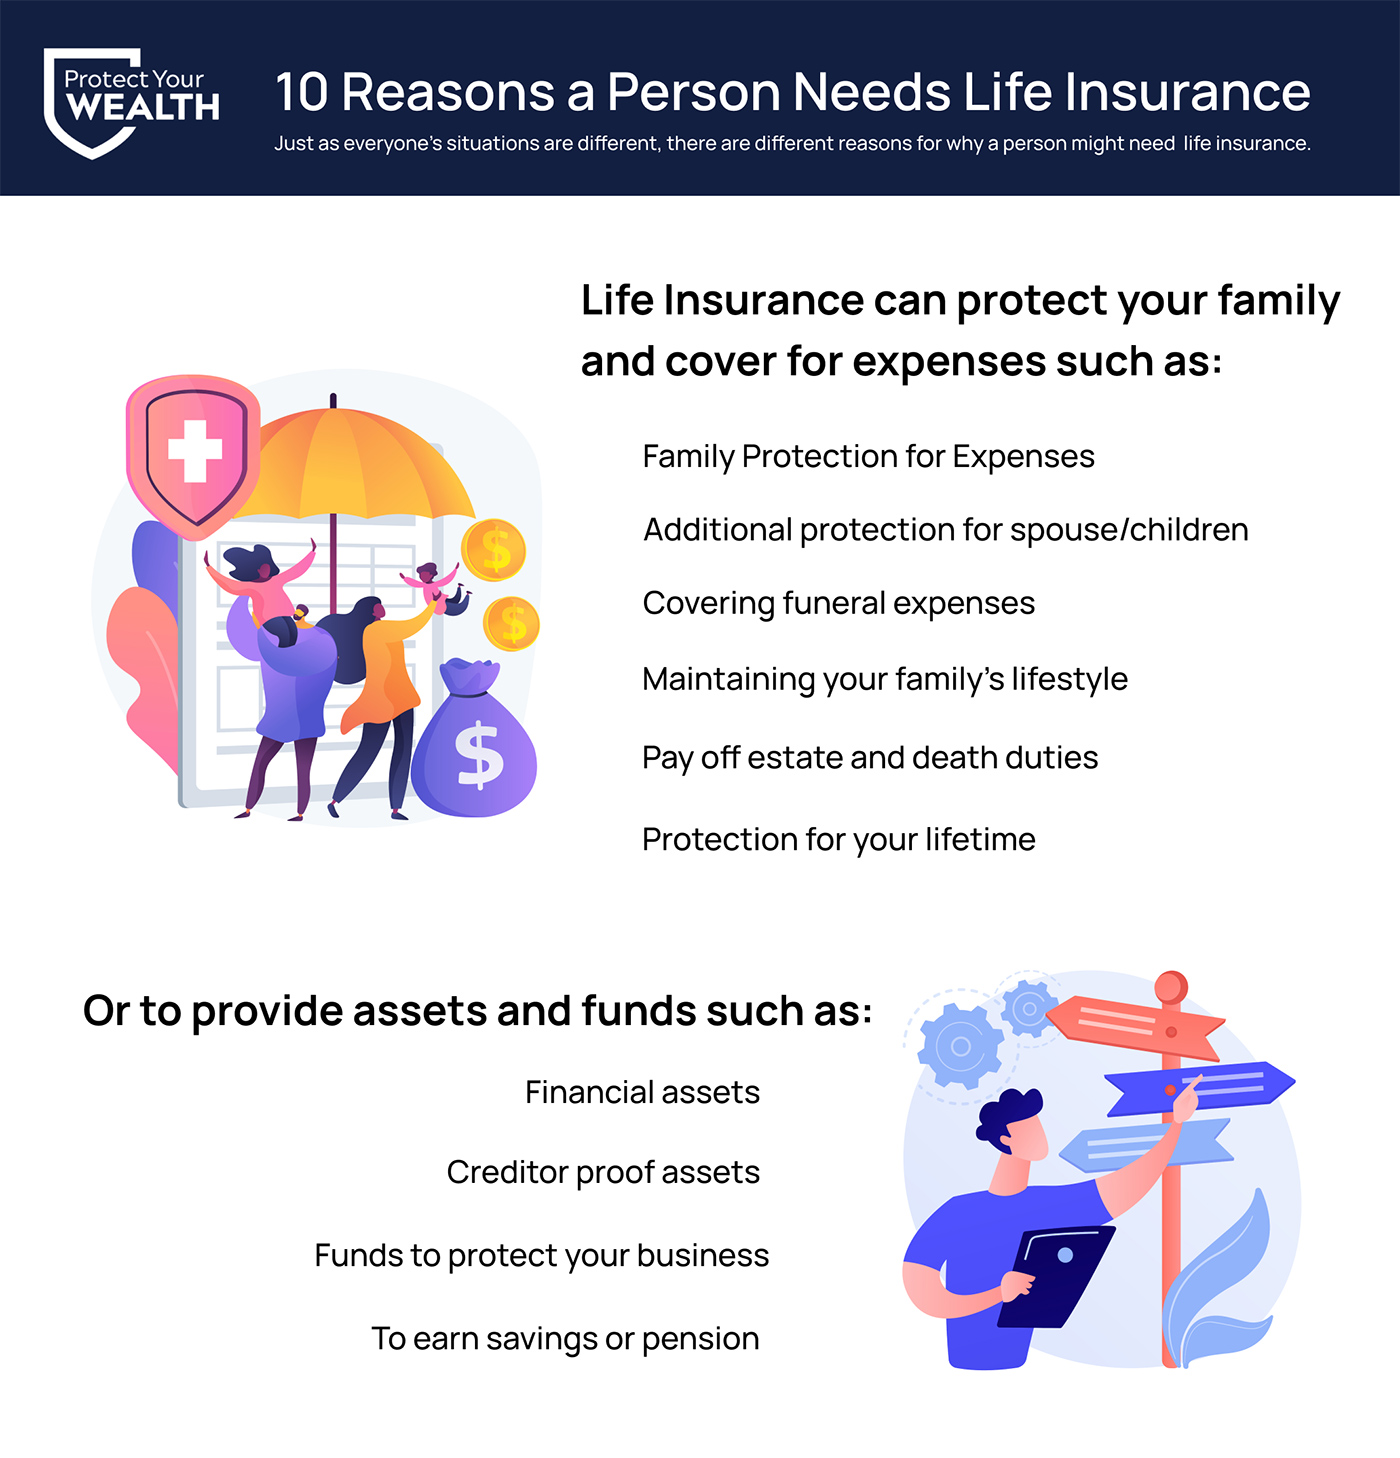 Top 10 reasons why a person needs life insurance.